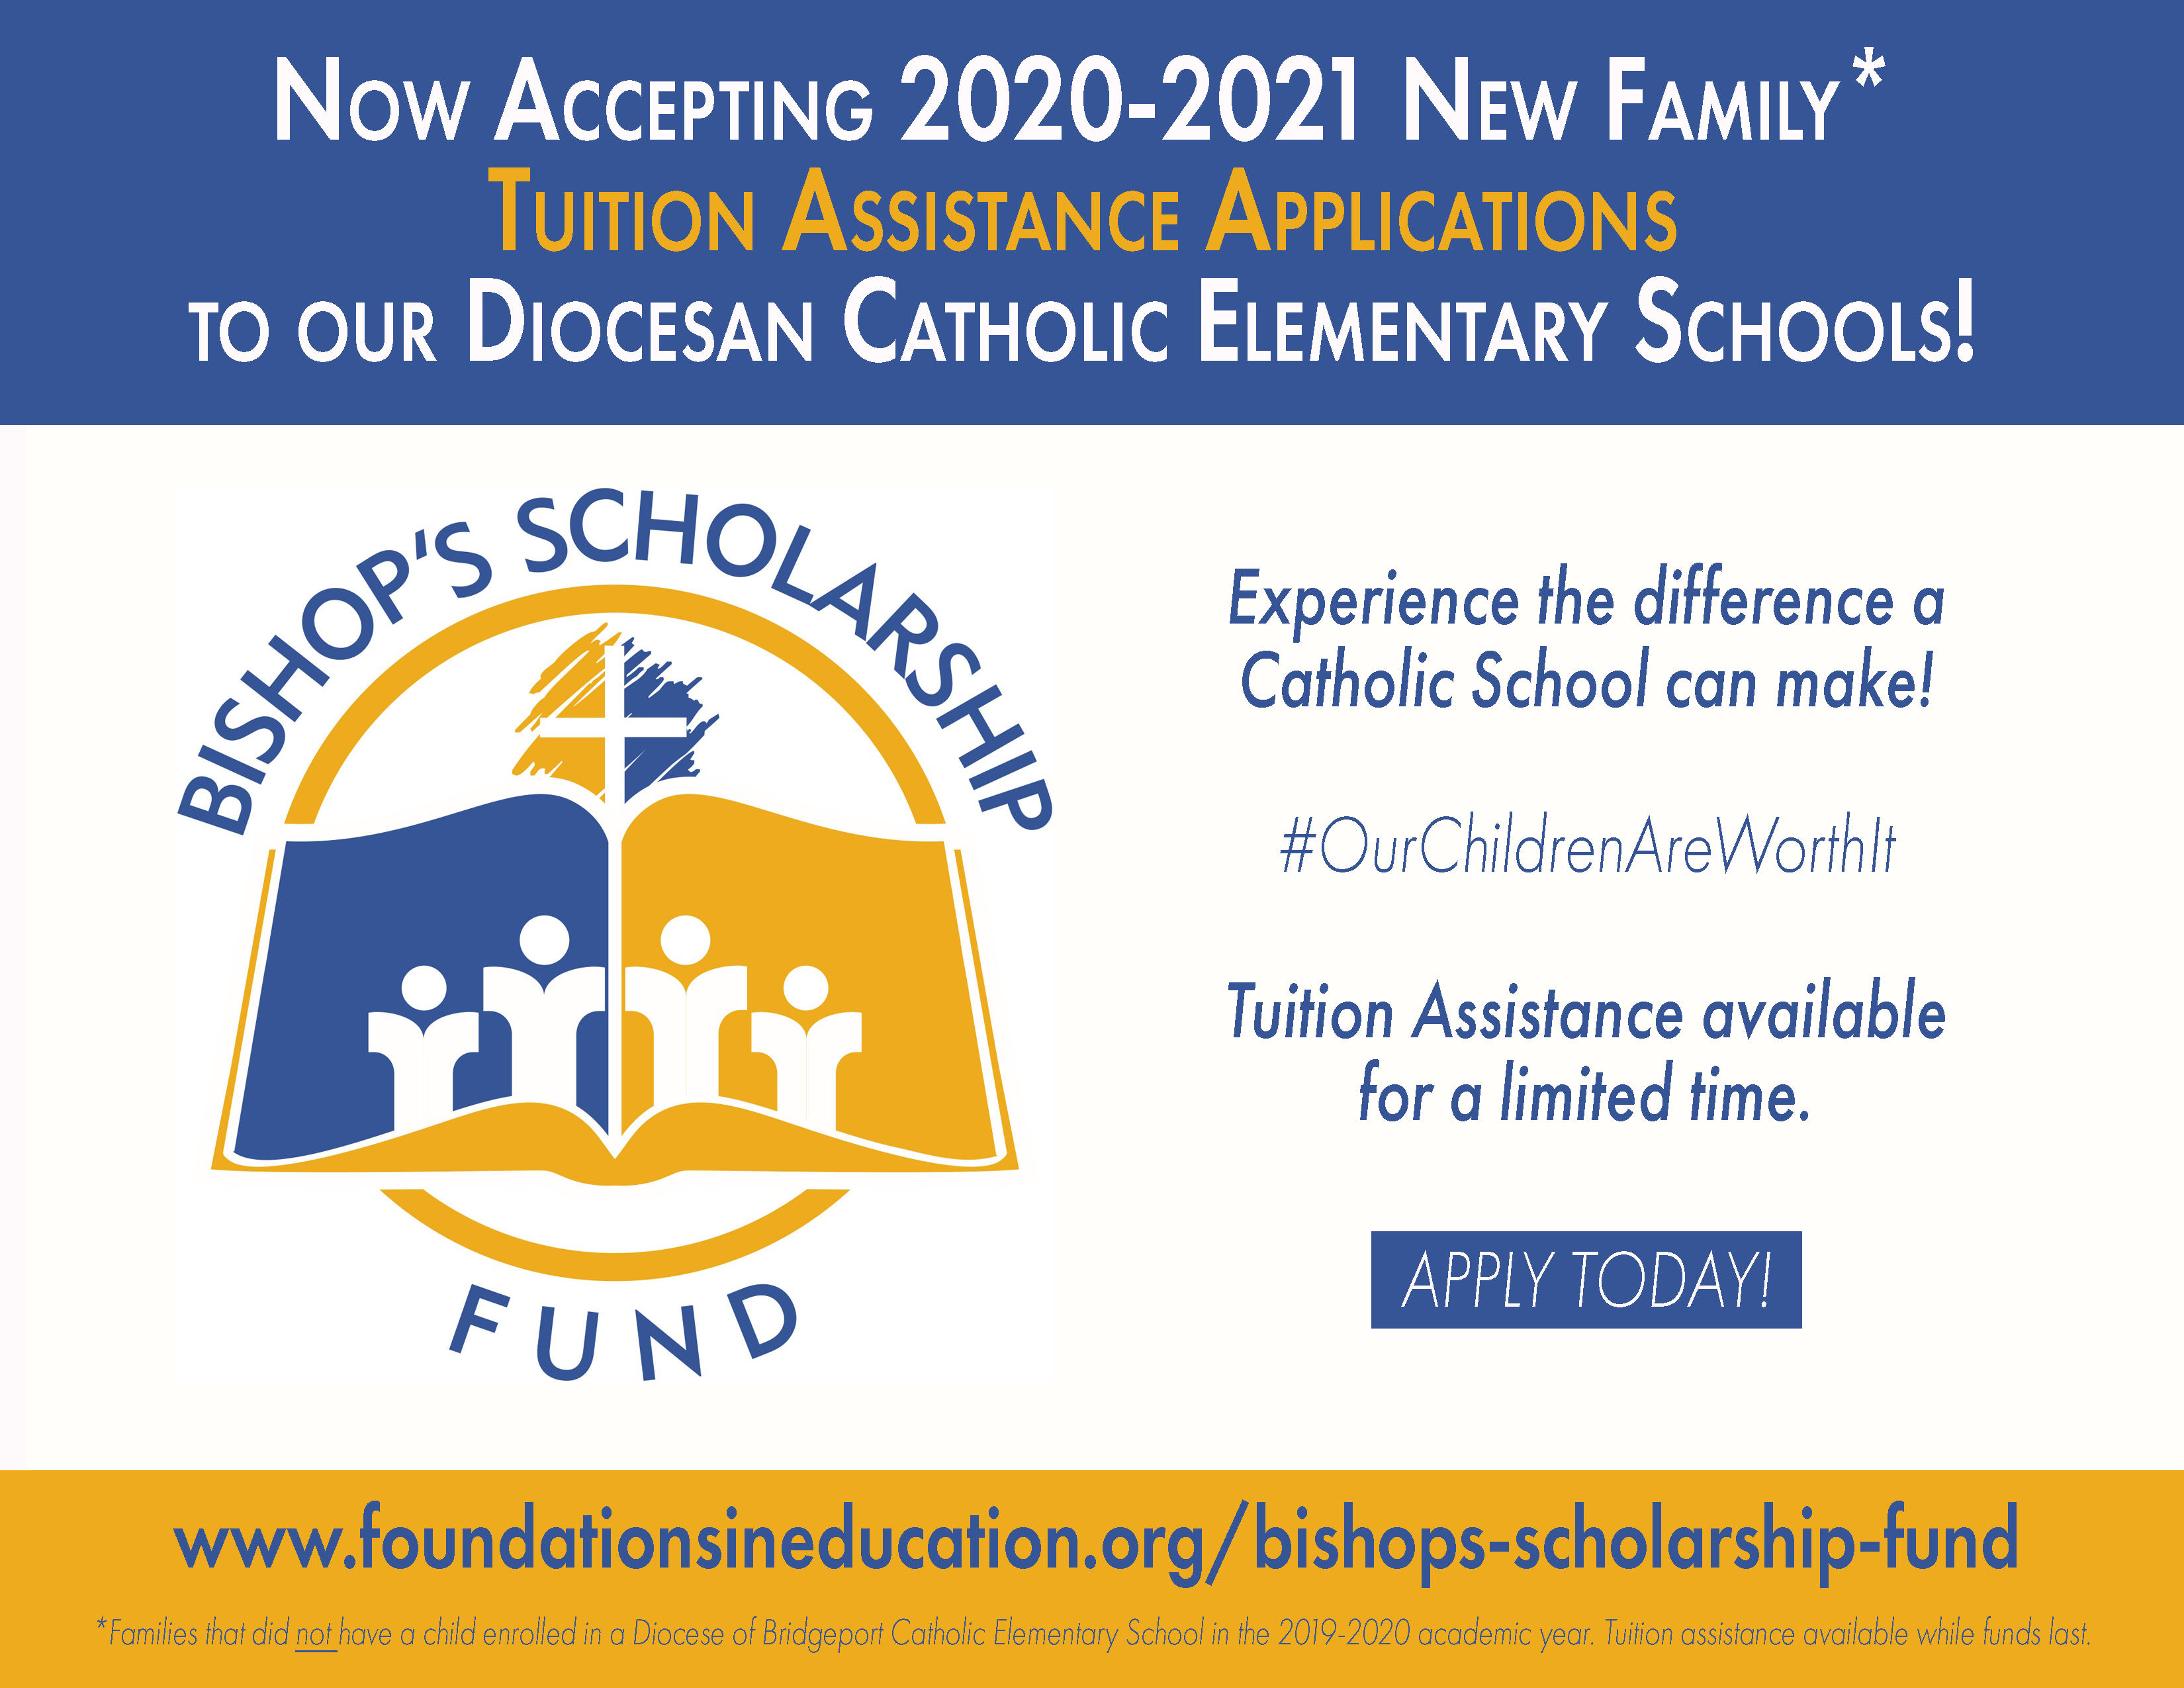 Now Accepting 2020-2021 New Family (Families that did not have a child enrolled in a Diocese of Bridgeport Catholic Elementary School in the 2019-2020 academic year.) Tuition Assistance Applications to our Diocesan Catholic Elementary Schools! Experience the difference a Catholic School can make! #OurChildrenAreWorthIt Tuition Assistance available for a limited time. Apply Today! www.foundationsineducation.org/bishops-scholarship-fund Tuition assistance available while funds last.